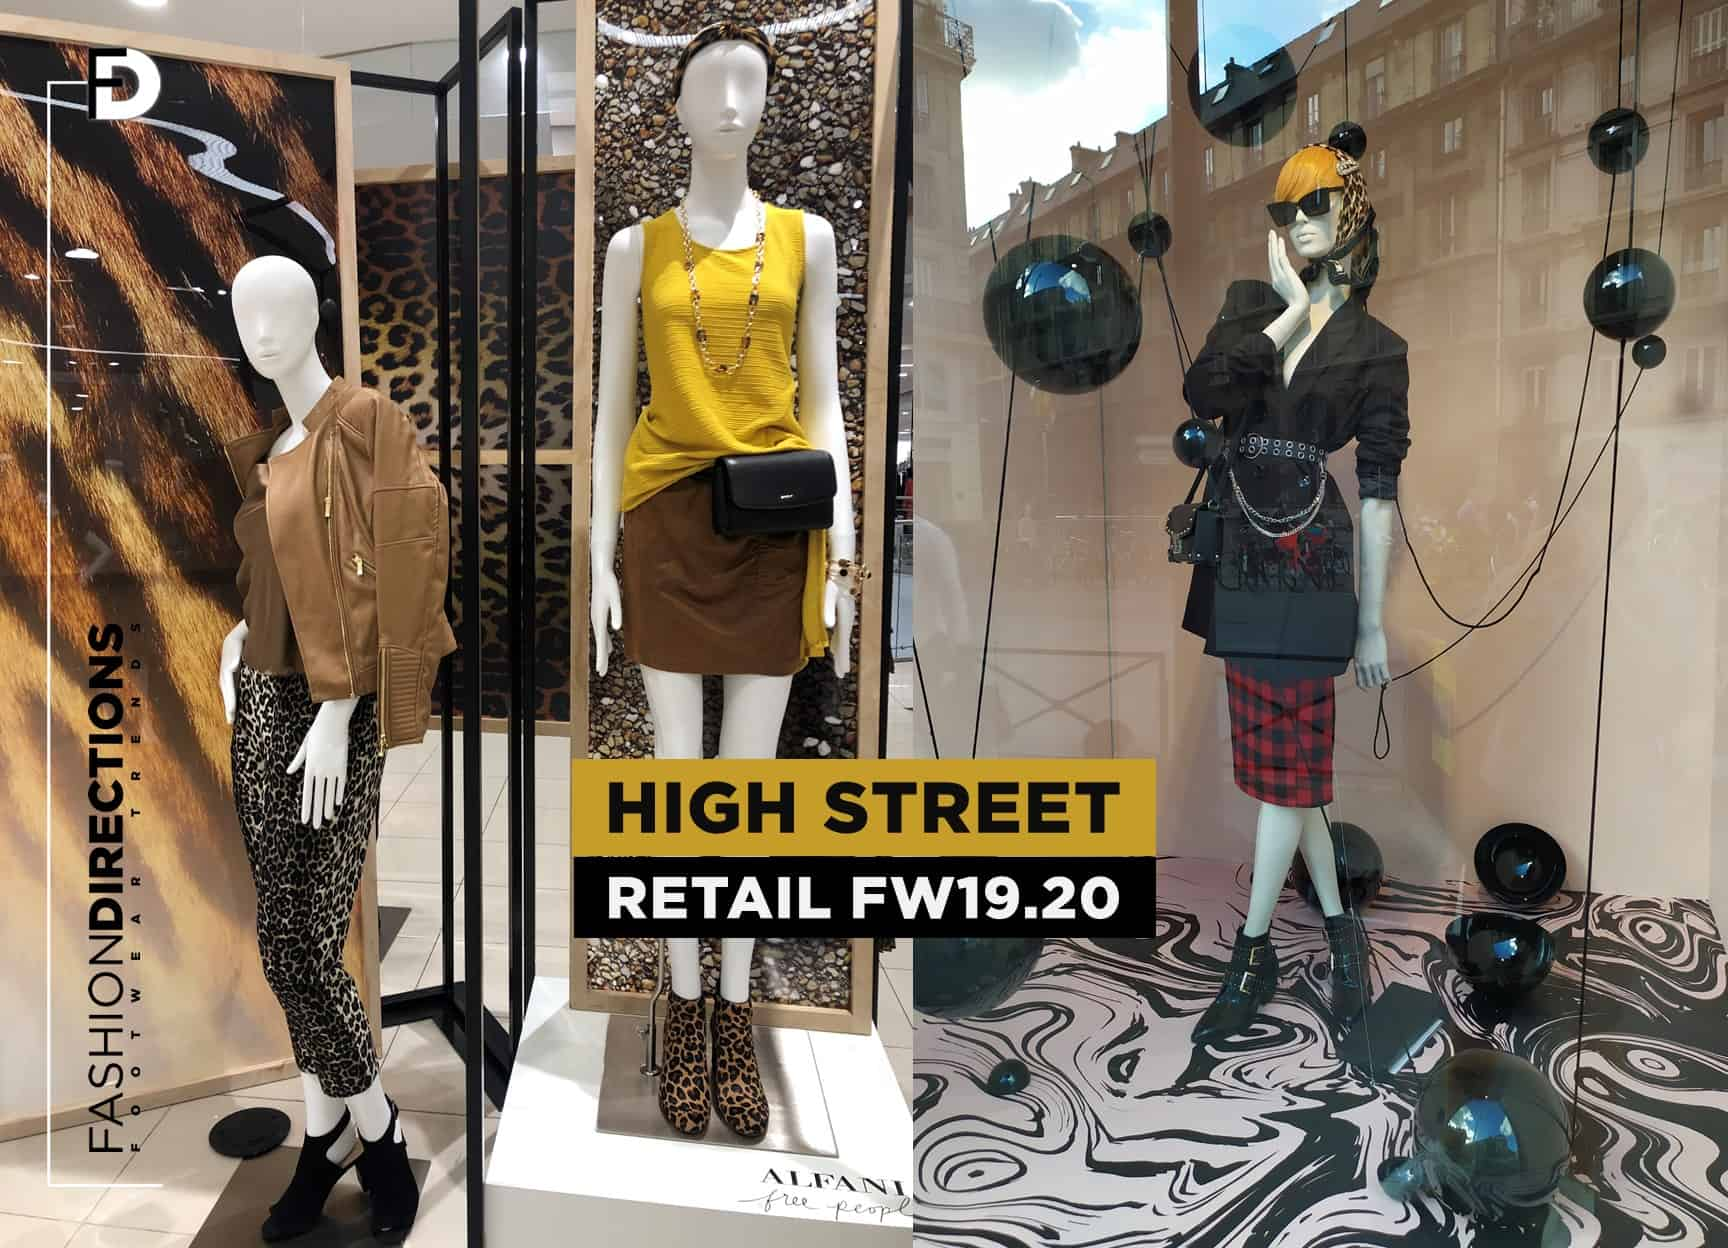 Retail High Street FW19.20